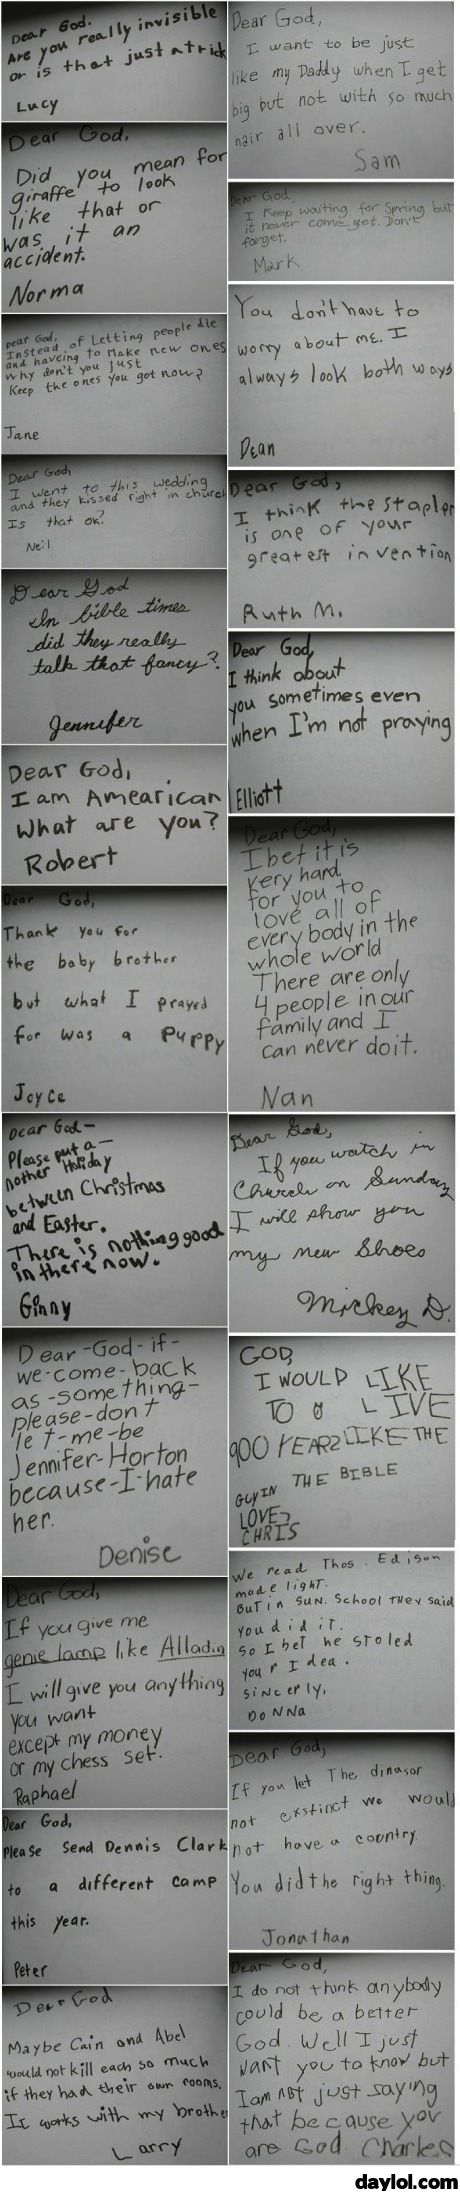 When kids write letters to god - DayLoL.com - Your Daily LoL!  #funny #kid #notes #letters